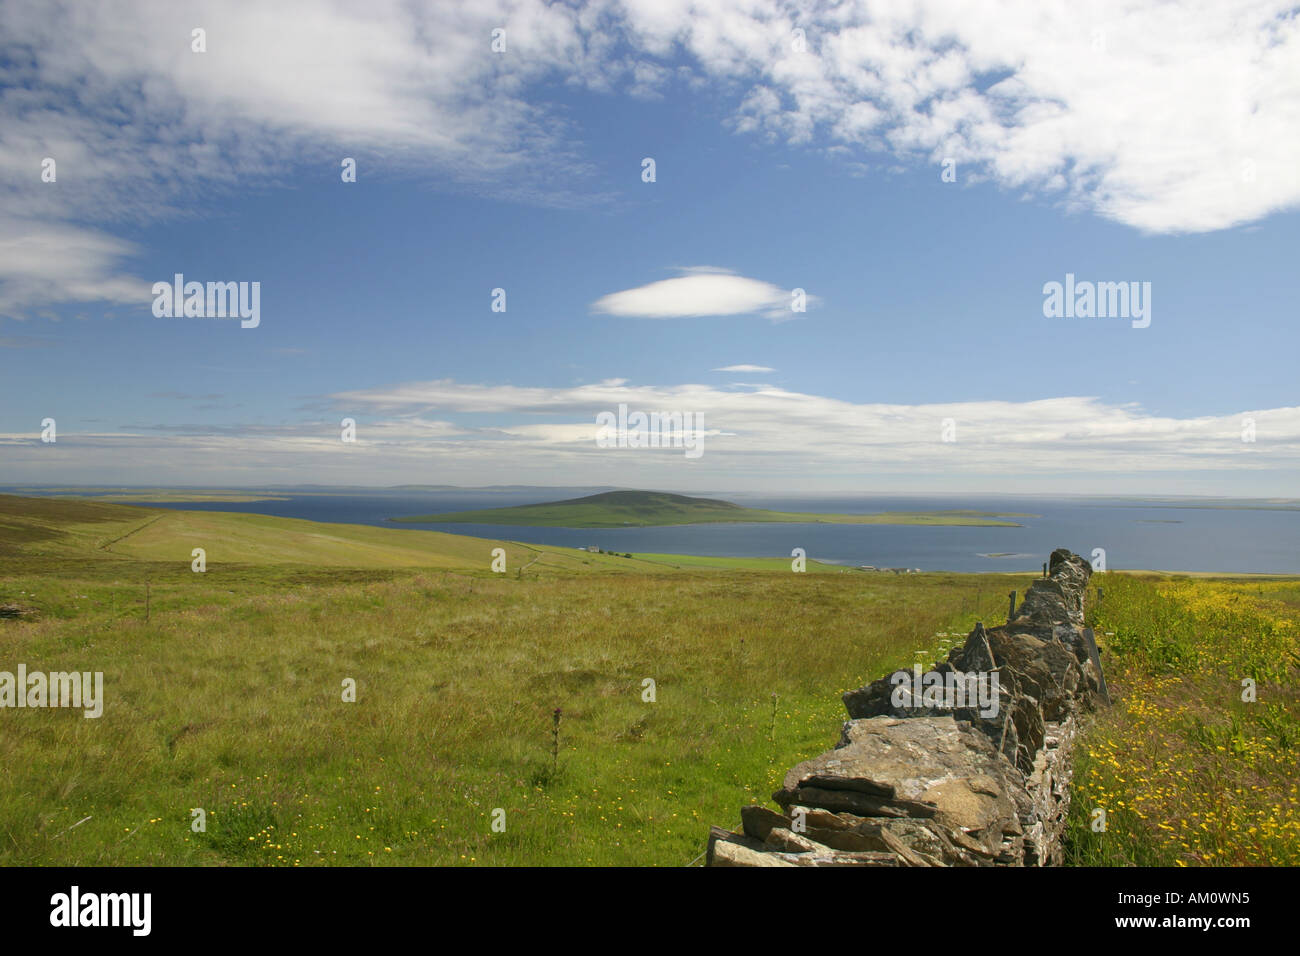 The island of Gairsay from Yessa Hill on Mainland, Orkney - Stock Image